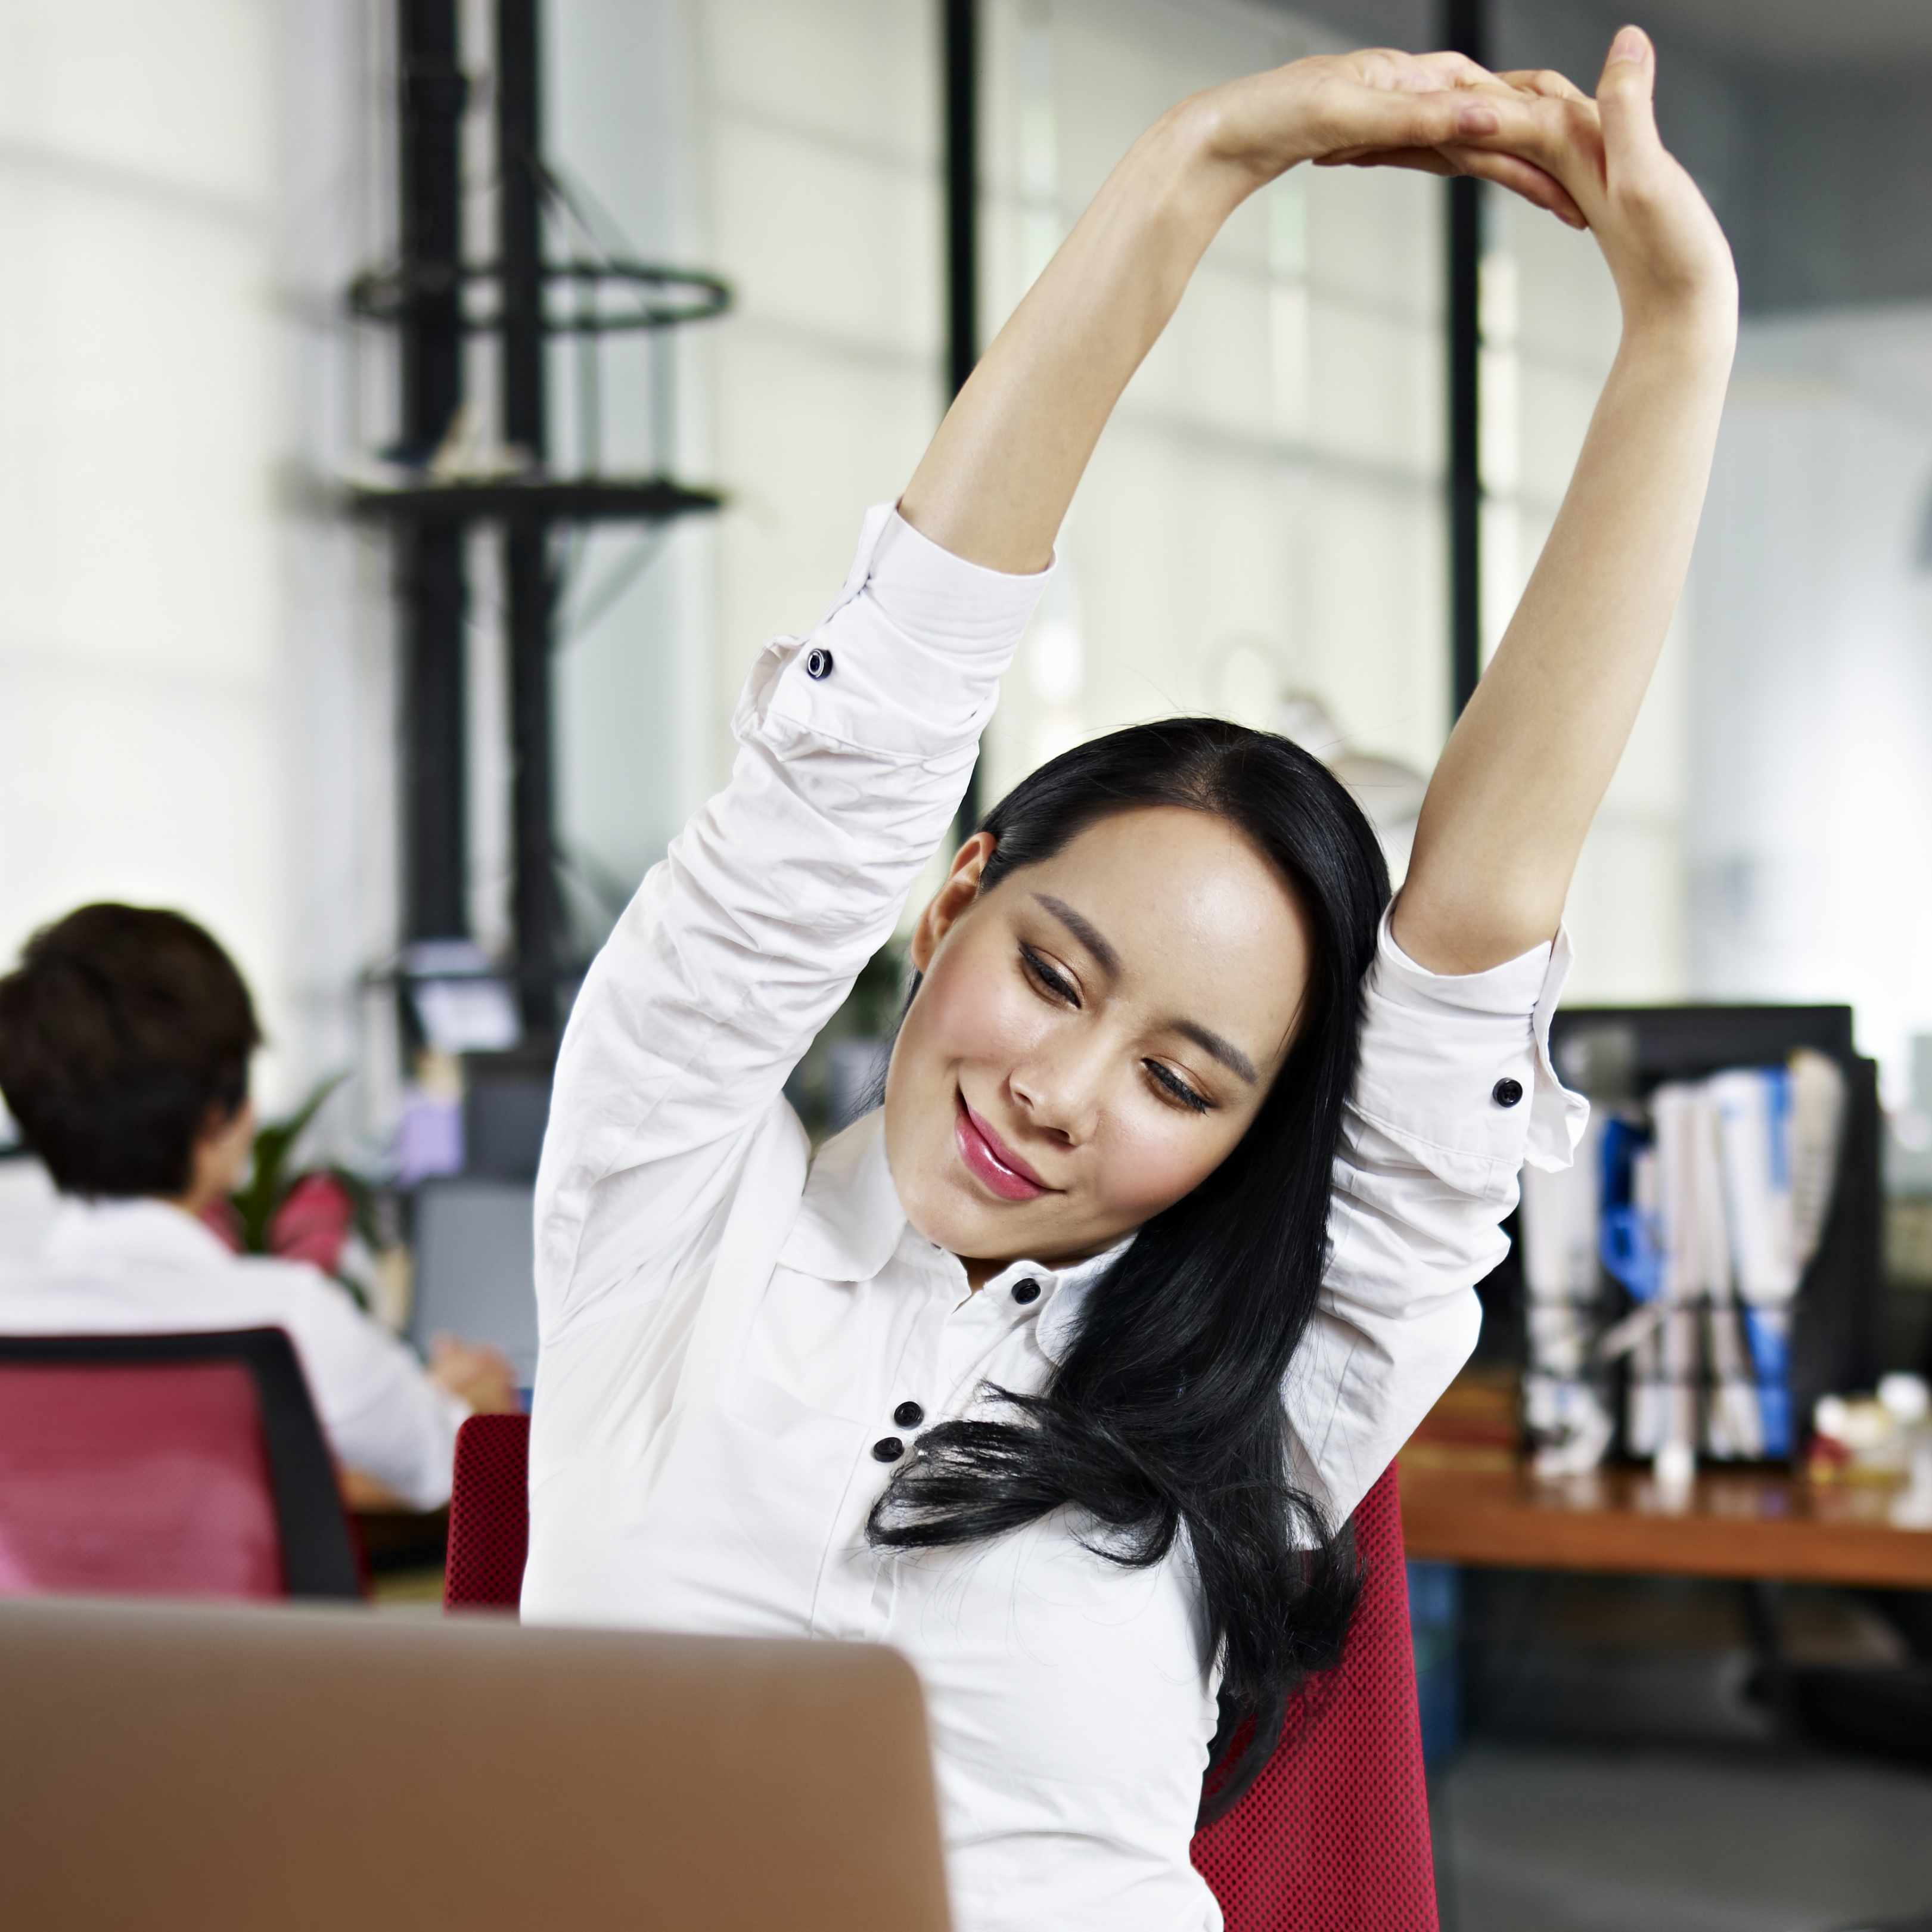 a young woman working in her office, stretching and exercising at her desk